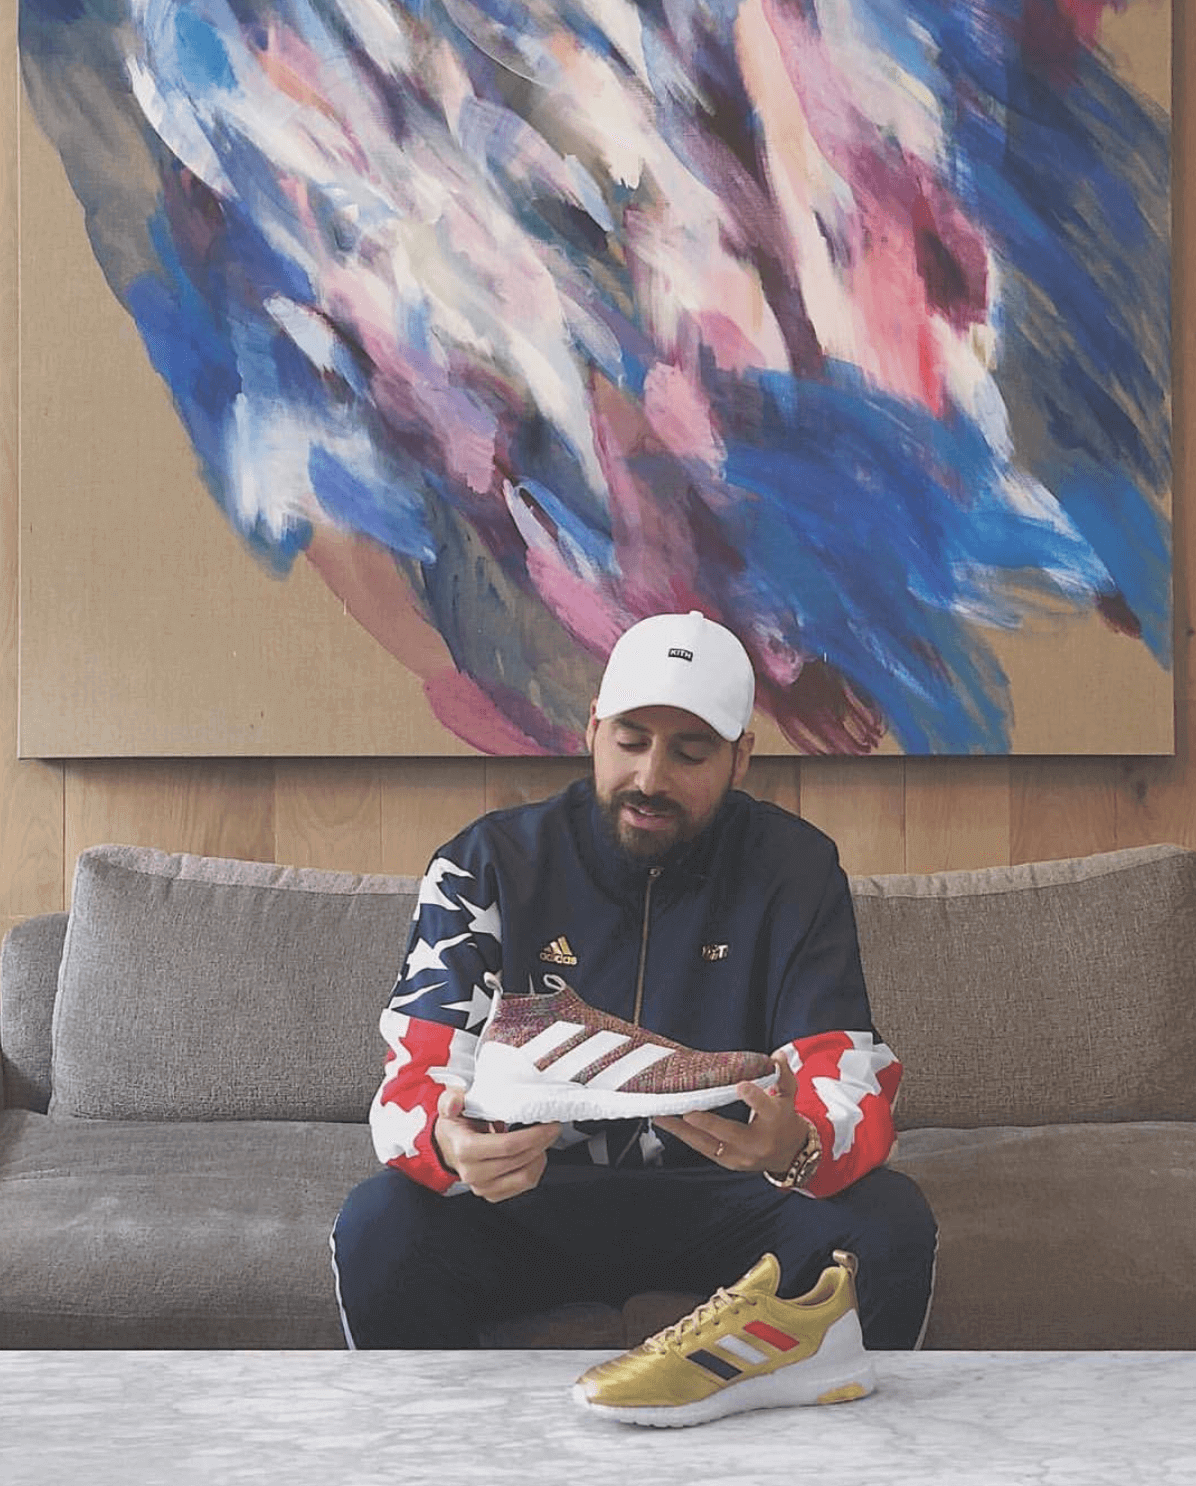 Ronnie Fieg with the Upcoming adidas Collaboration